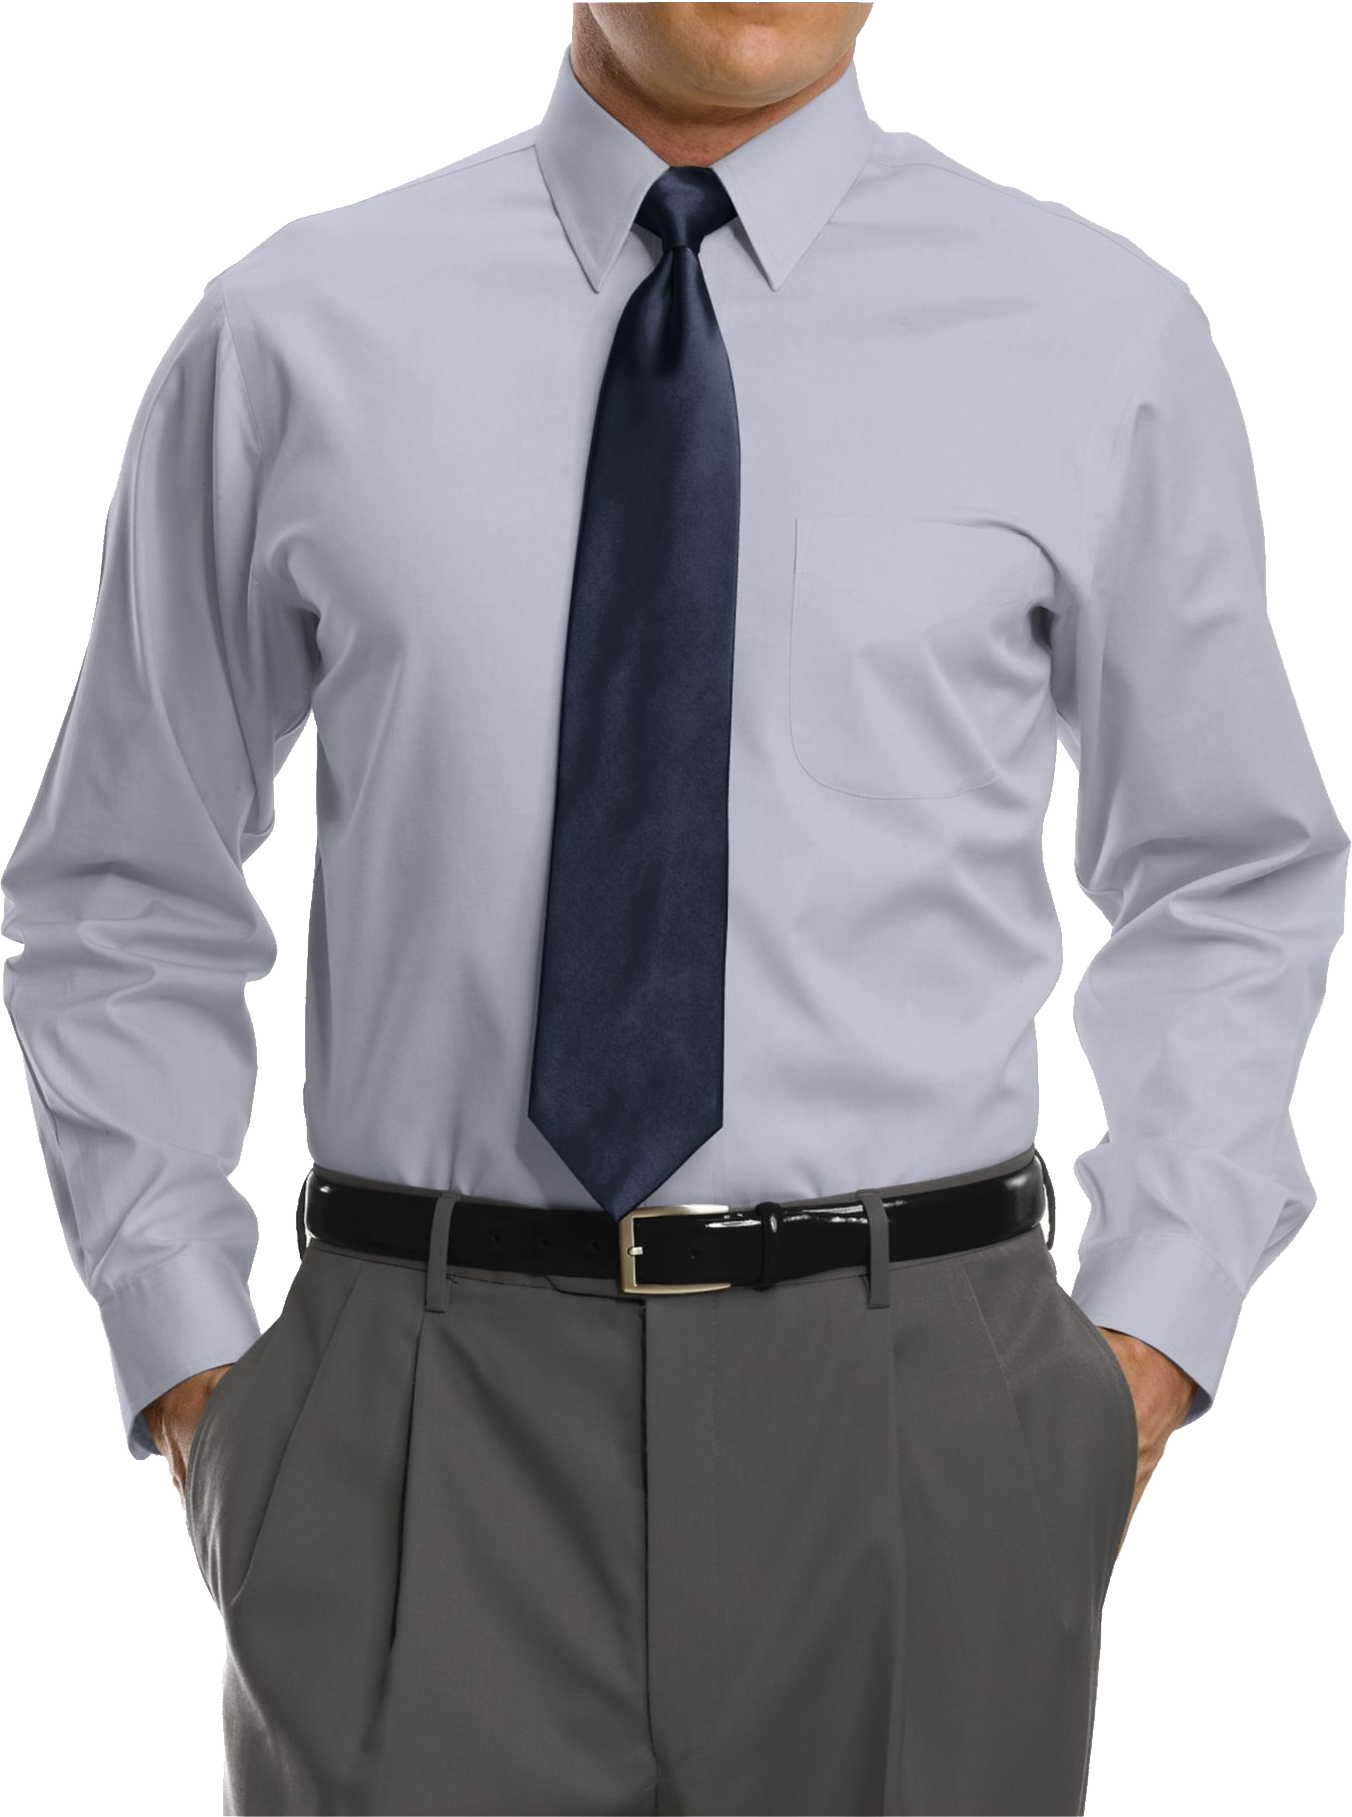 Point Collar Dress Shirt PNG Image